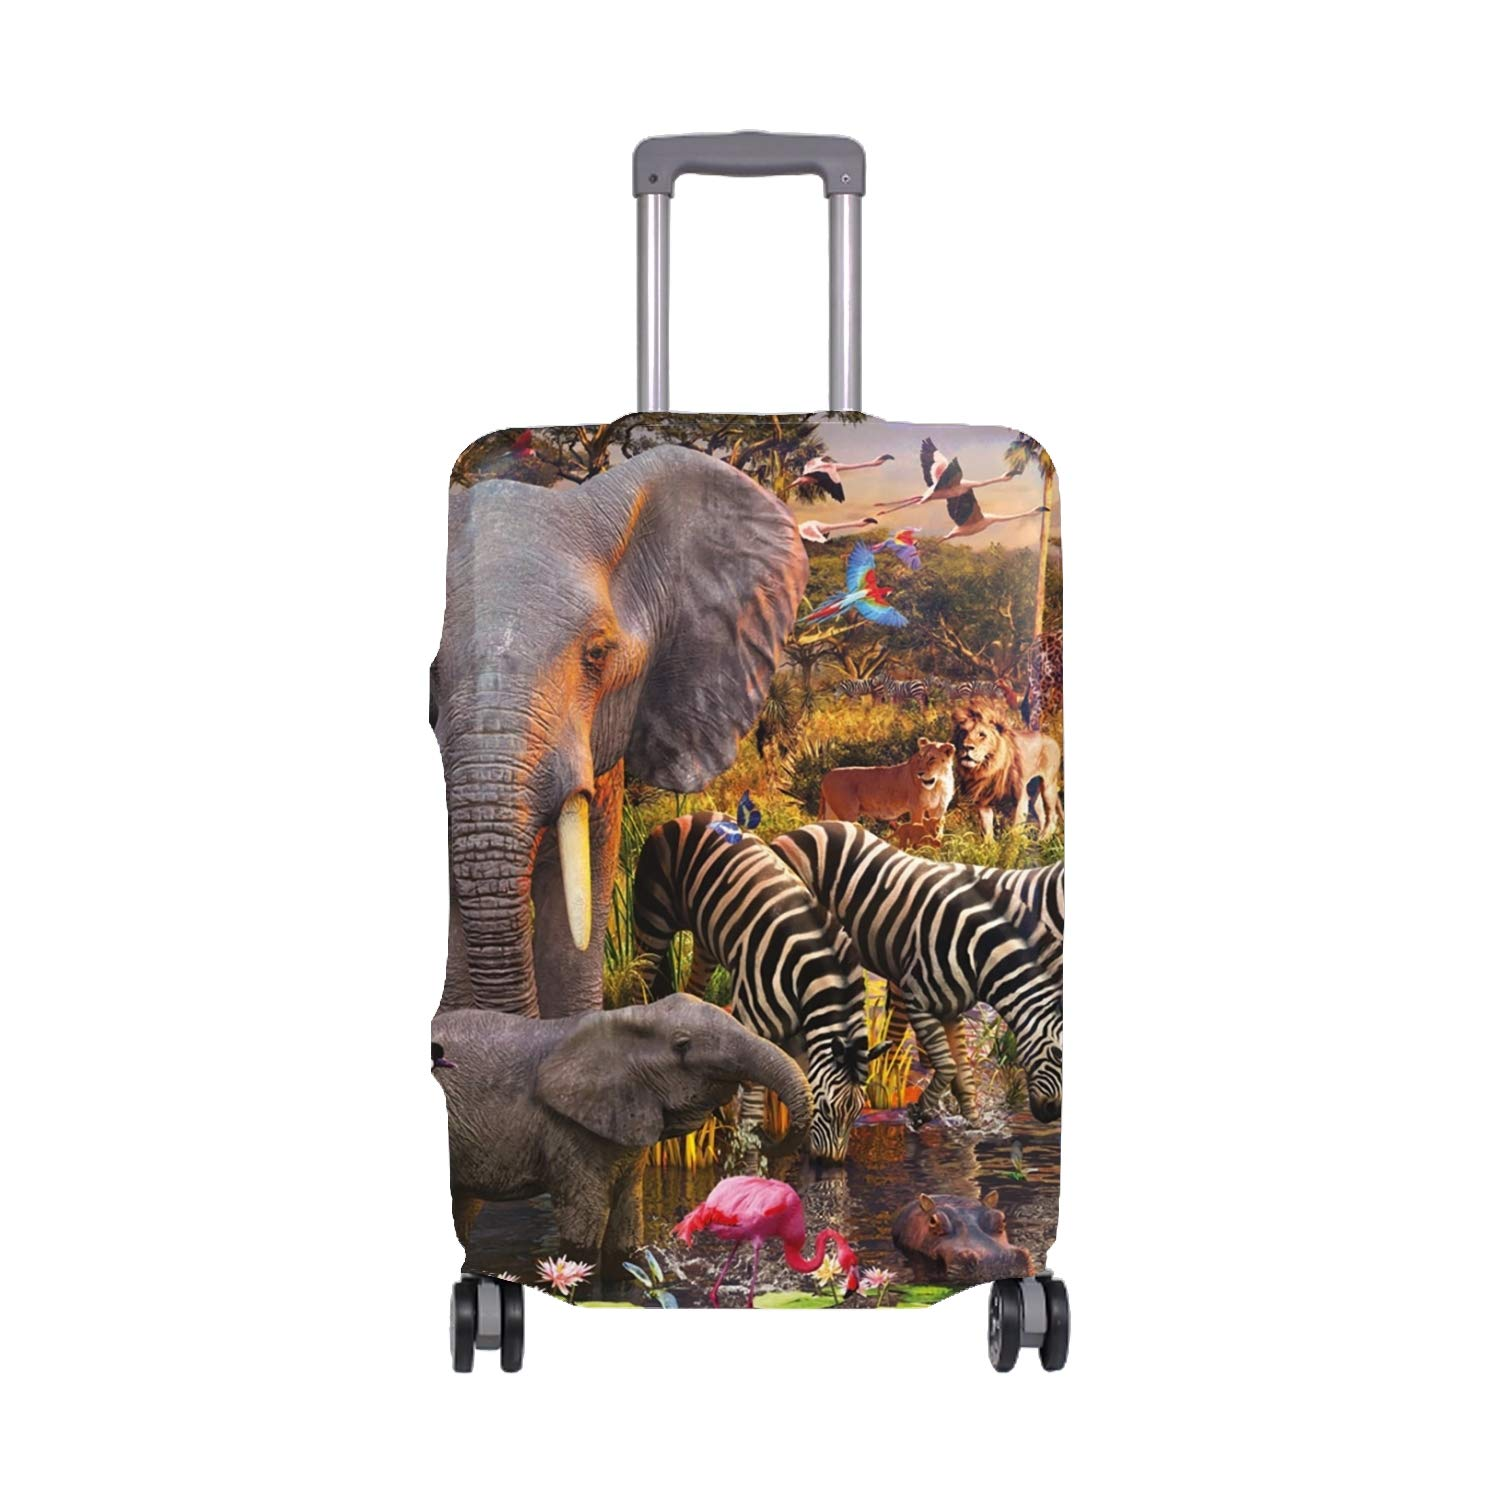 Safari Animals Creative Color Printed Luggage Cover Spandex Travel Suitcase Protective Cover